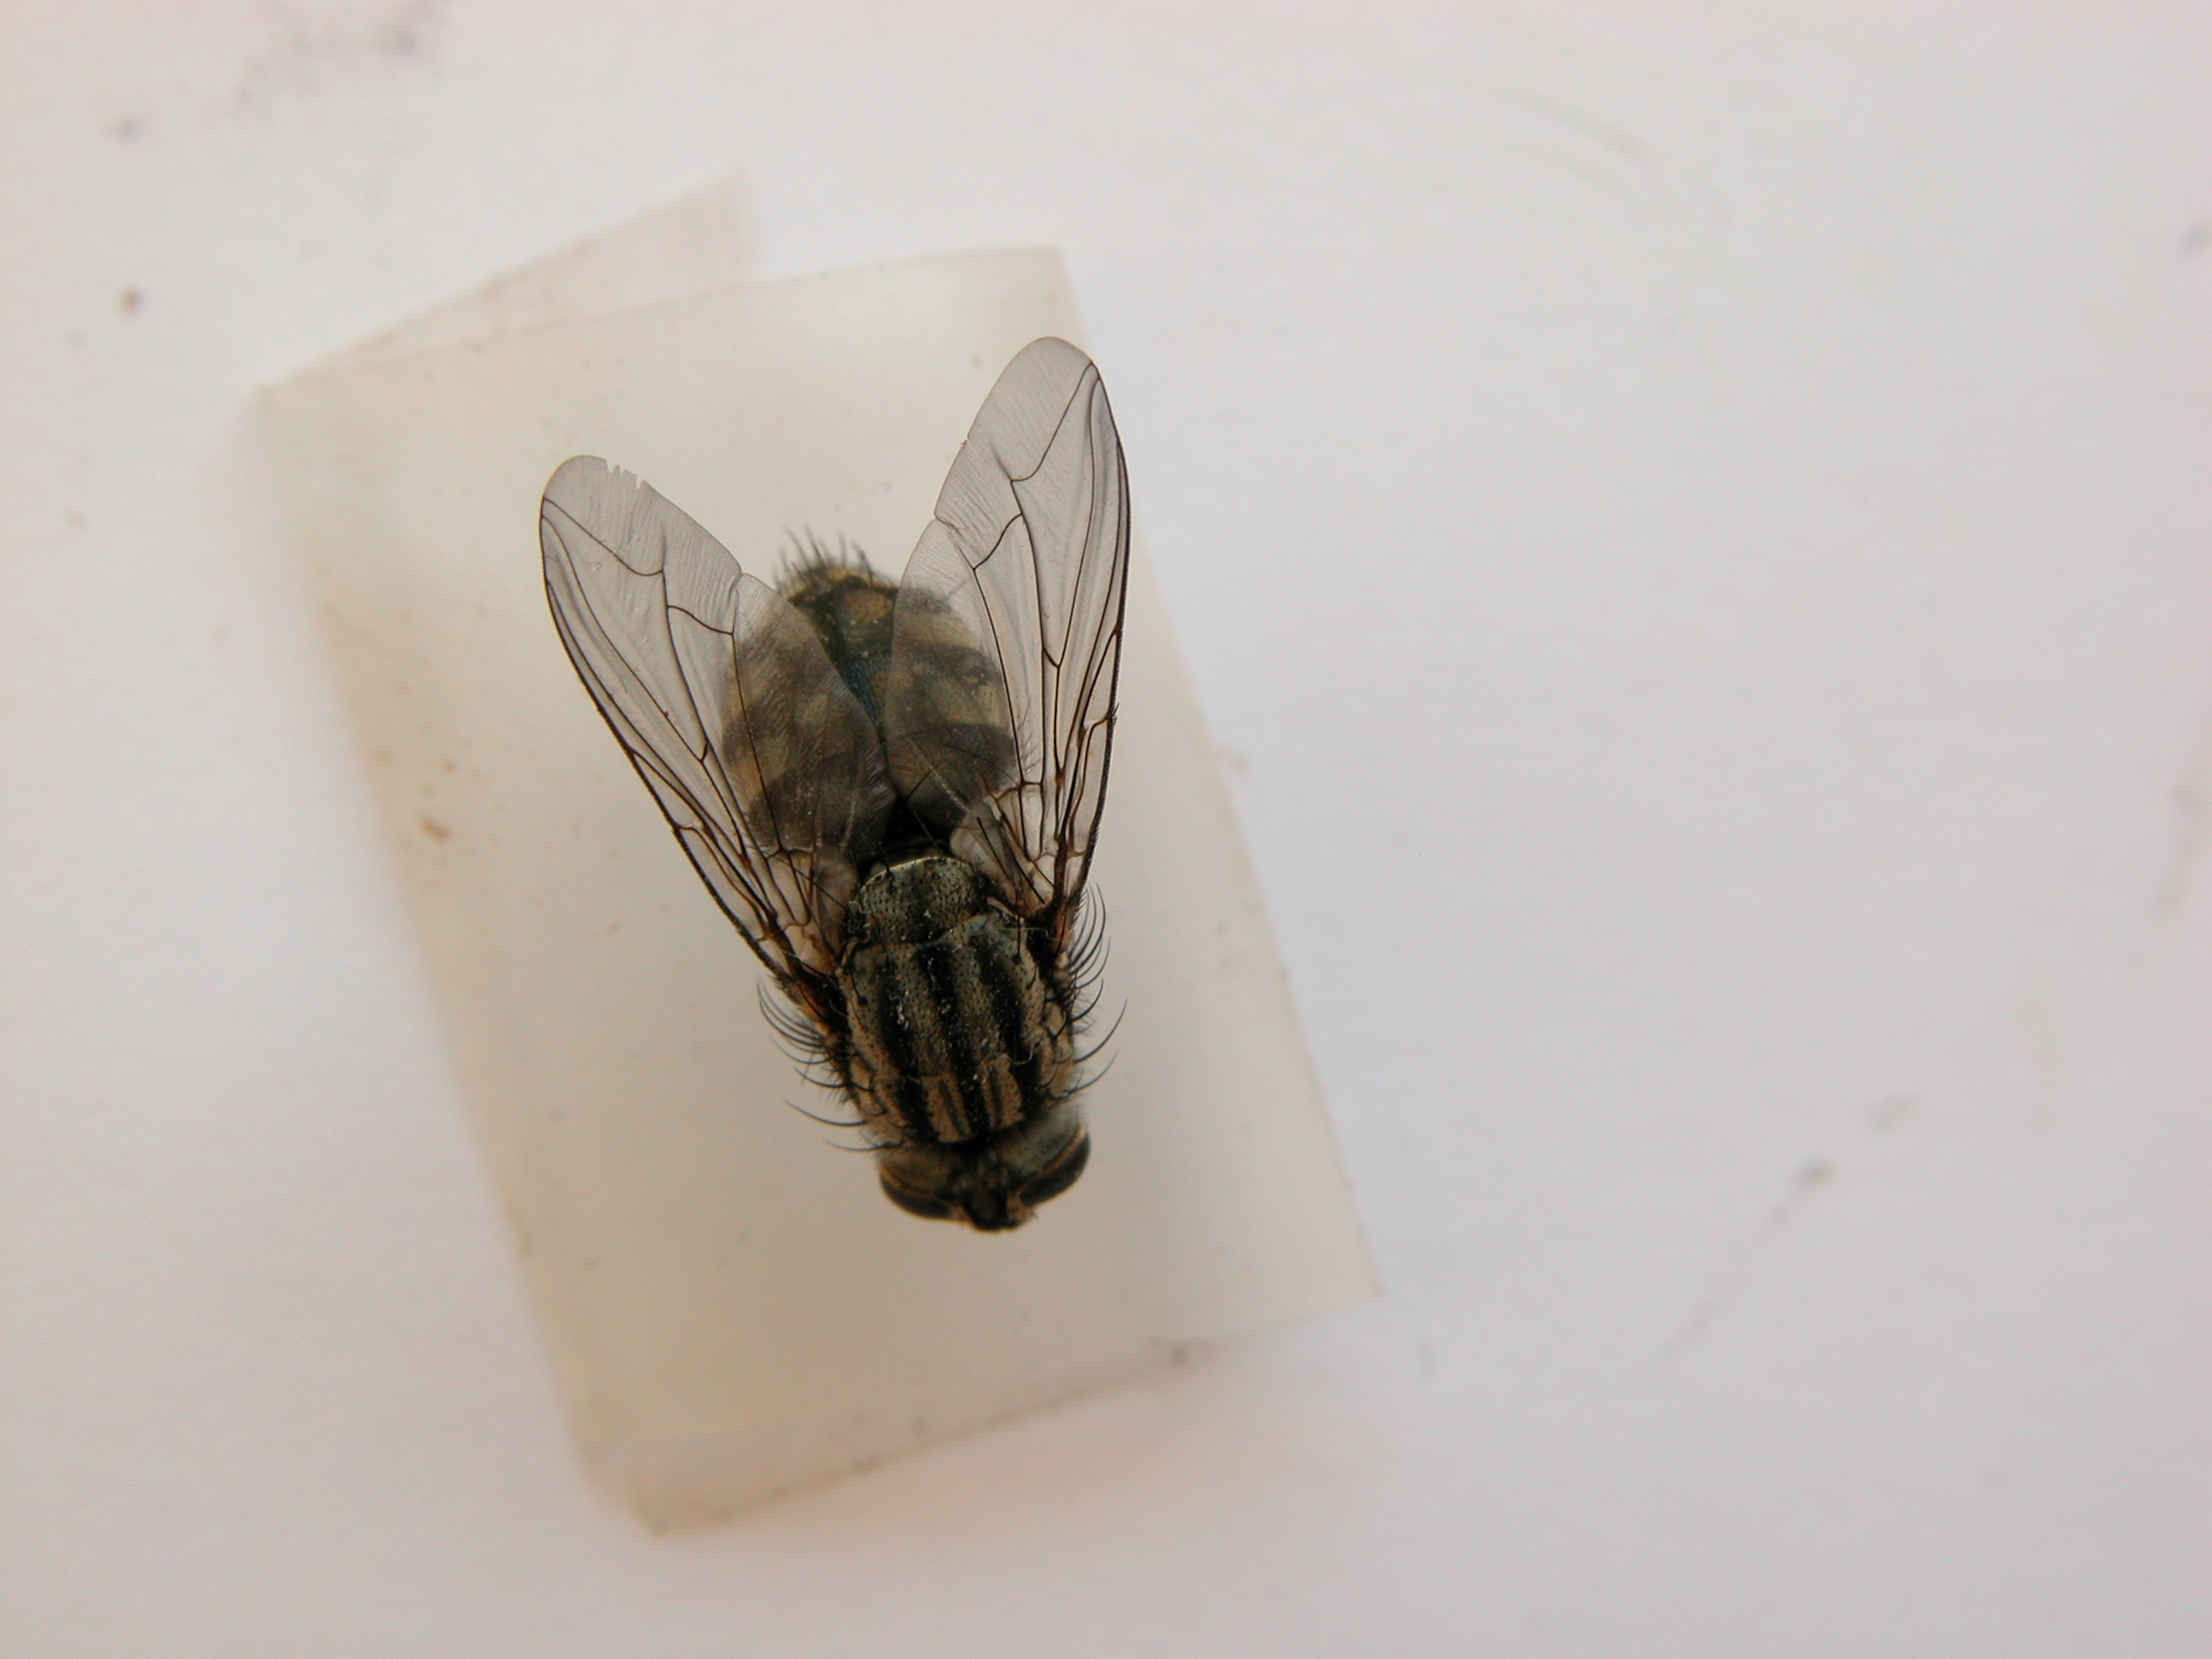 fly housefly insect dirty wing wings dead hair hairs